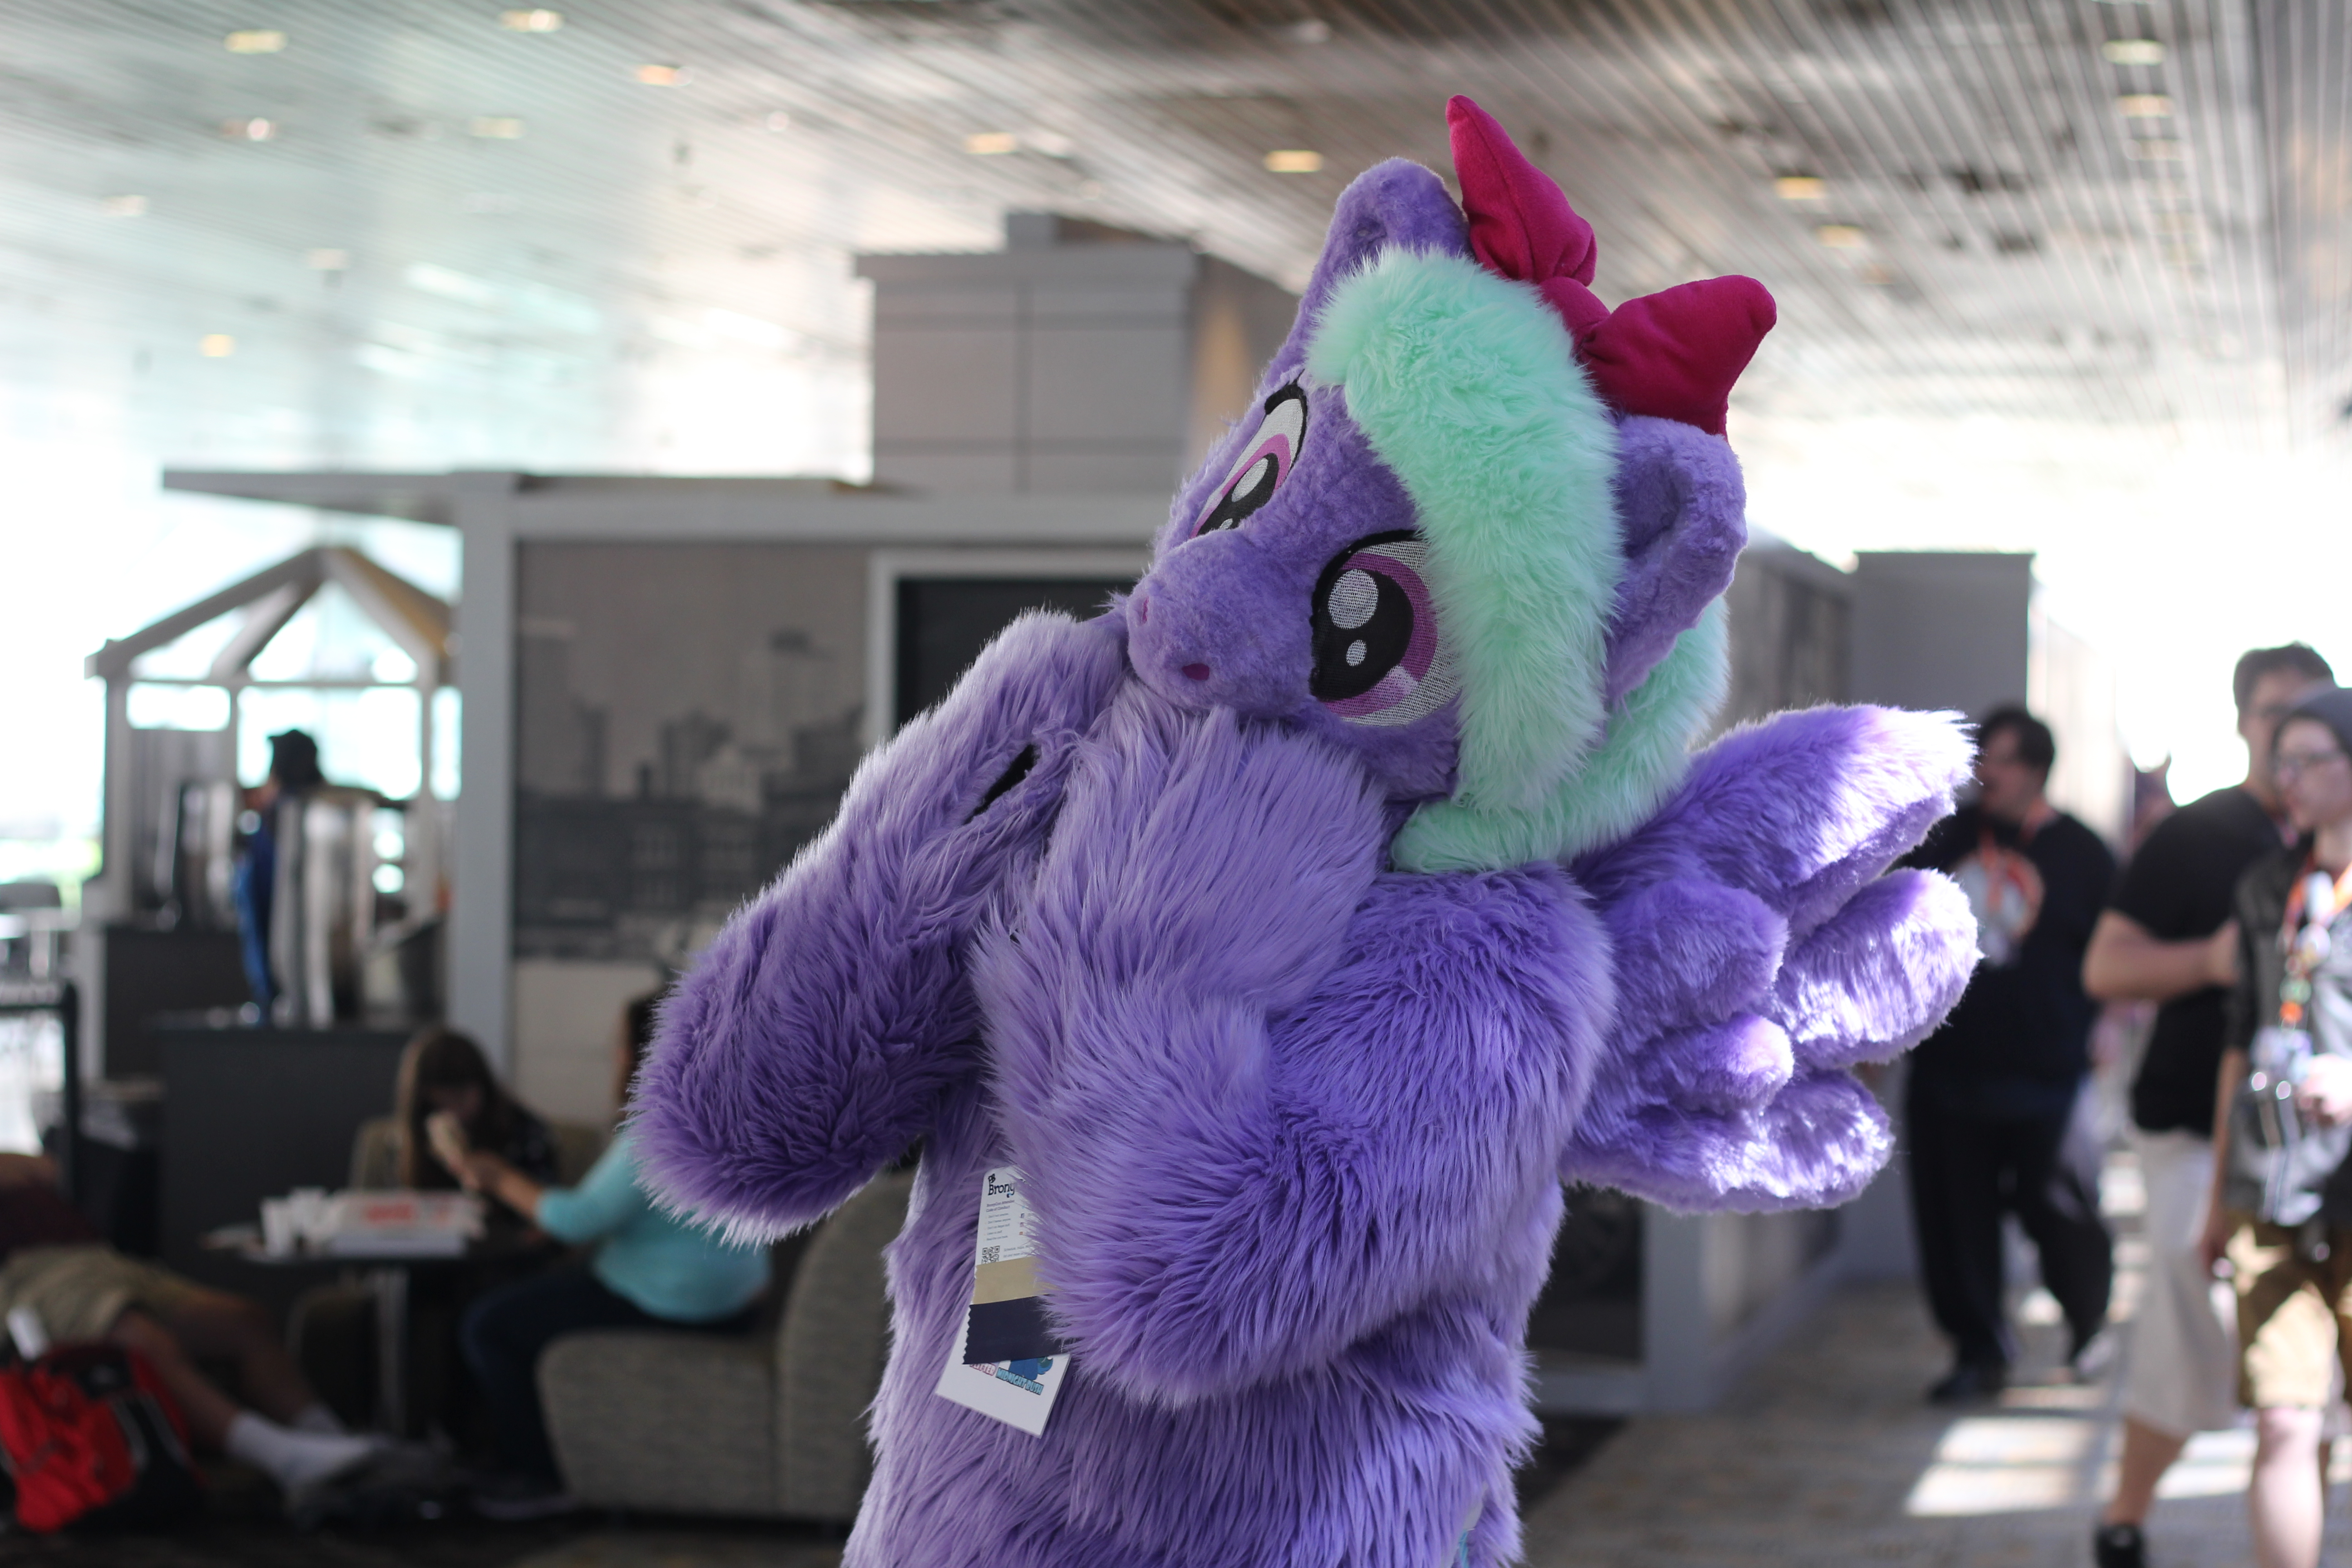 A cosplayer dressed as the Friendship is Magic character Flitter, a pegasus.